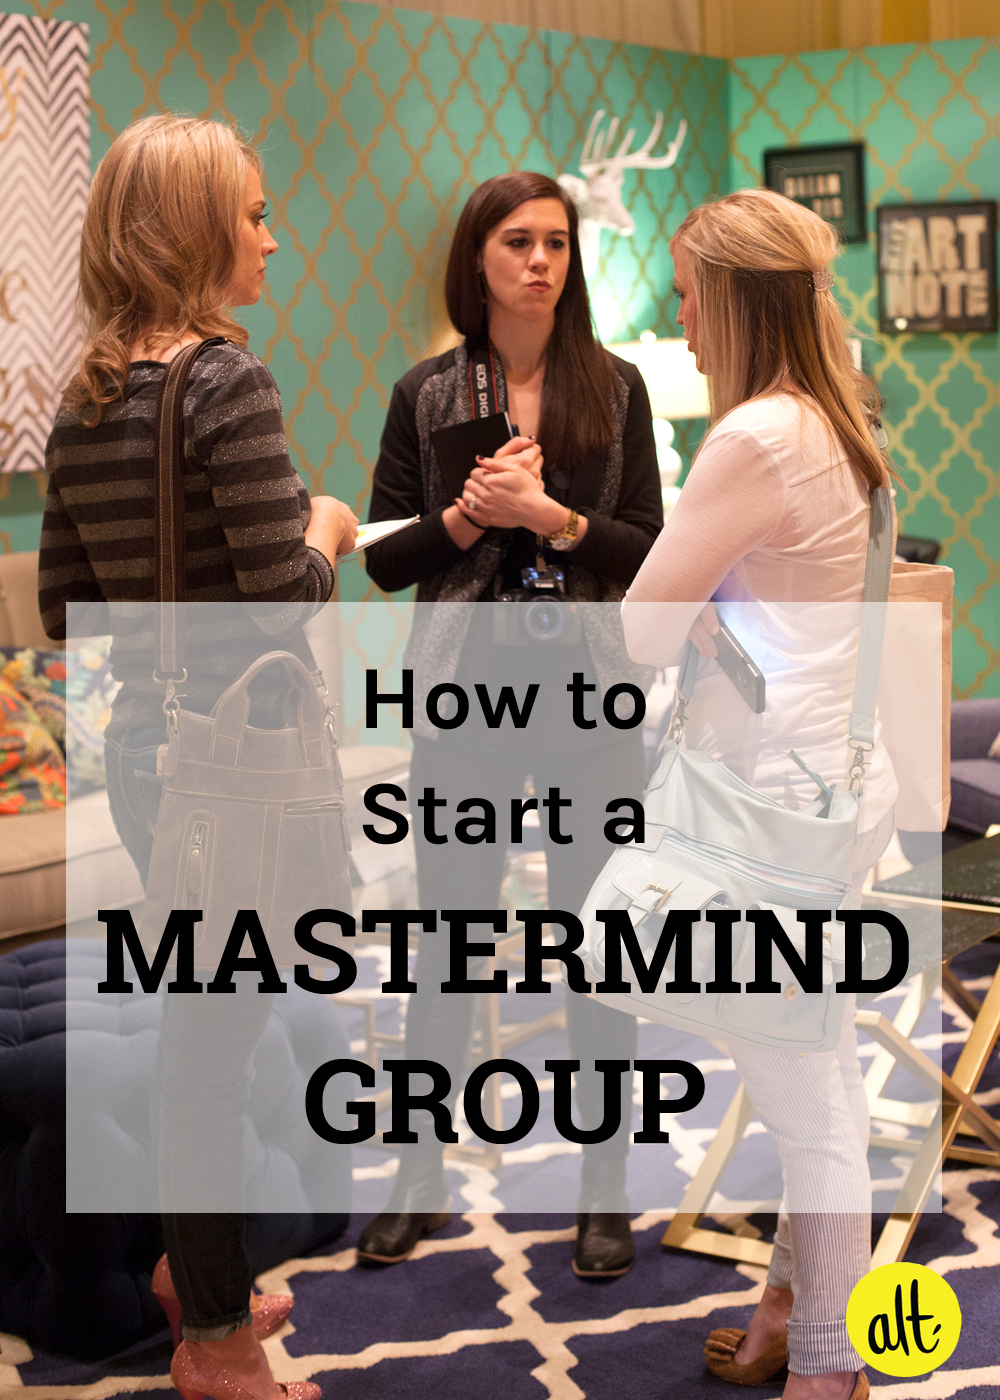 Tips for Beginning (and Maintaining!) an Online Mastermind Group